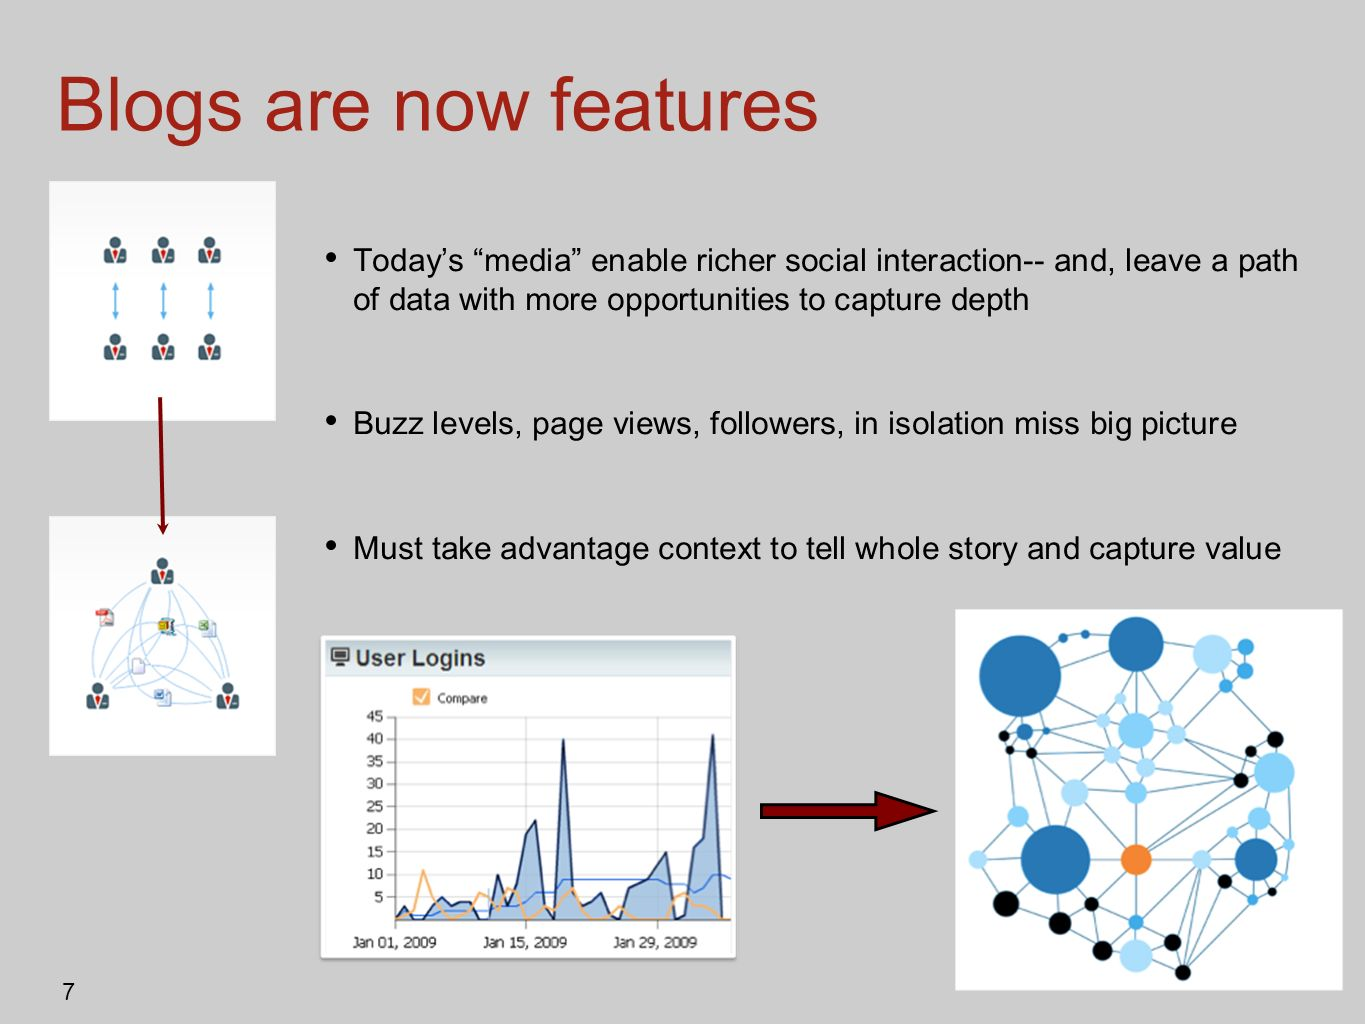 Blogs are now features Today's media enable richer social interaction-- and, leave a path of data with more opportunities to capture depth.